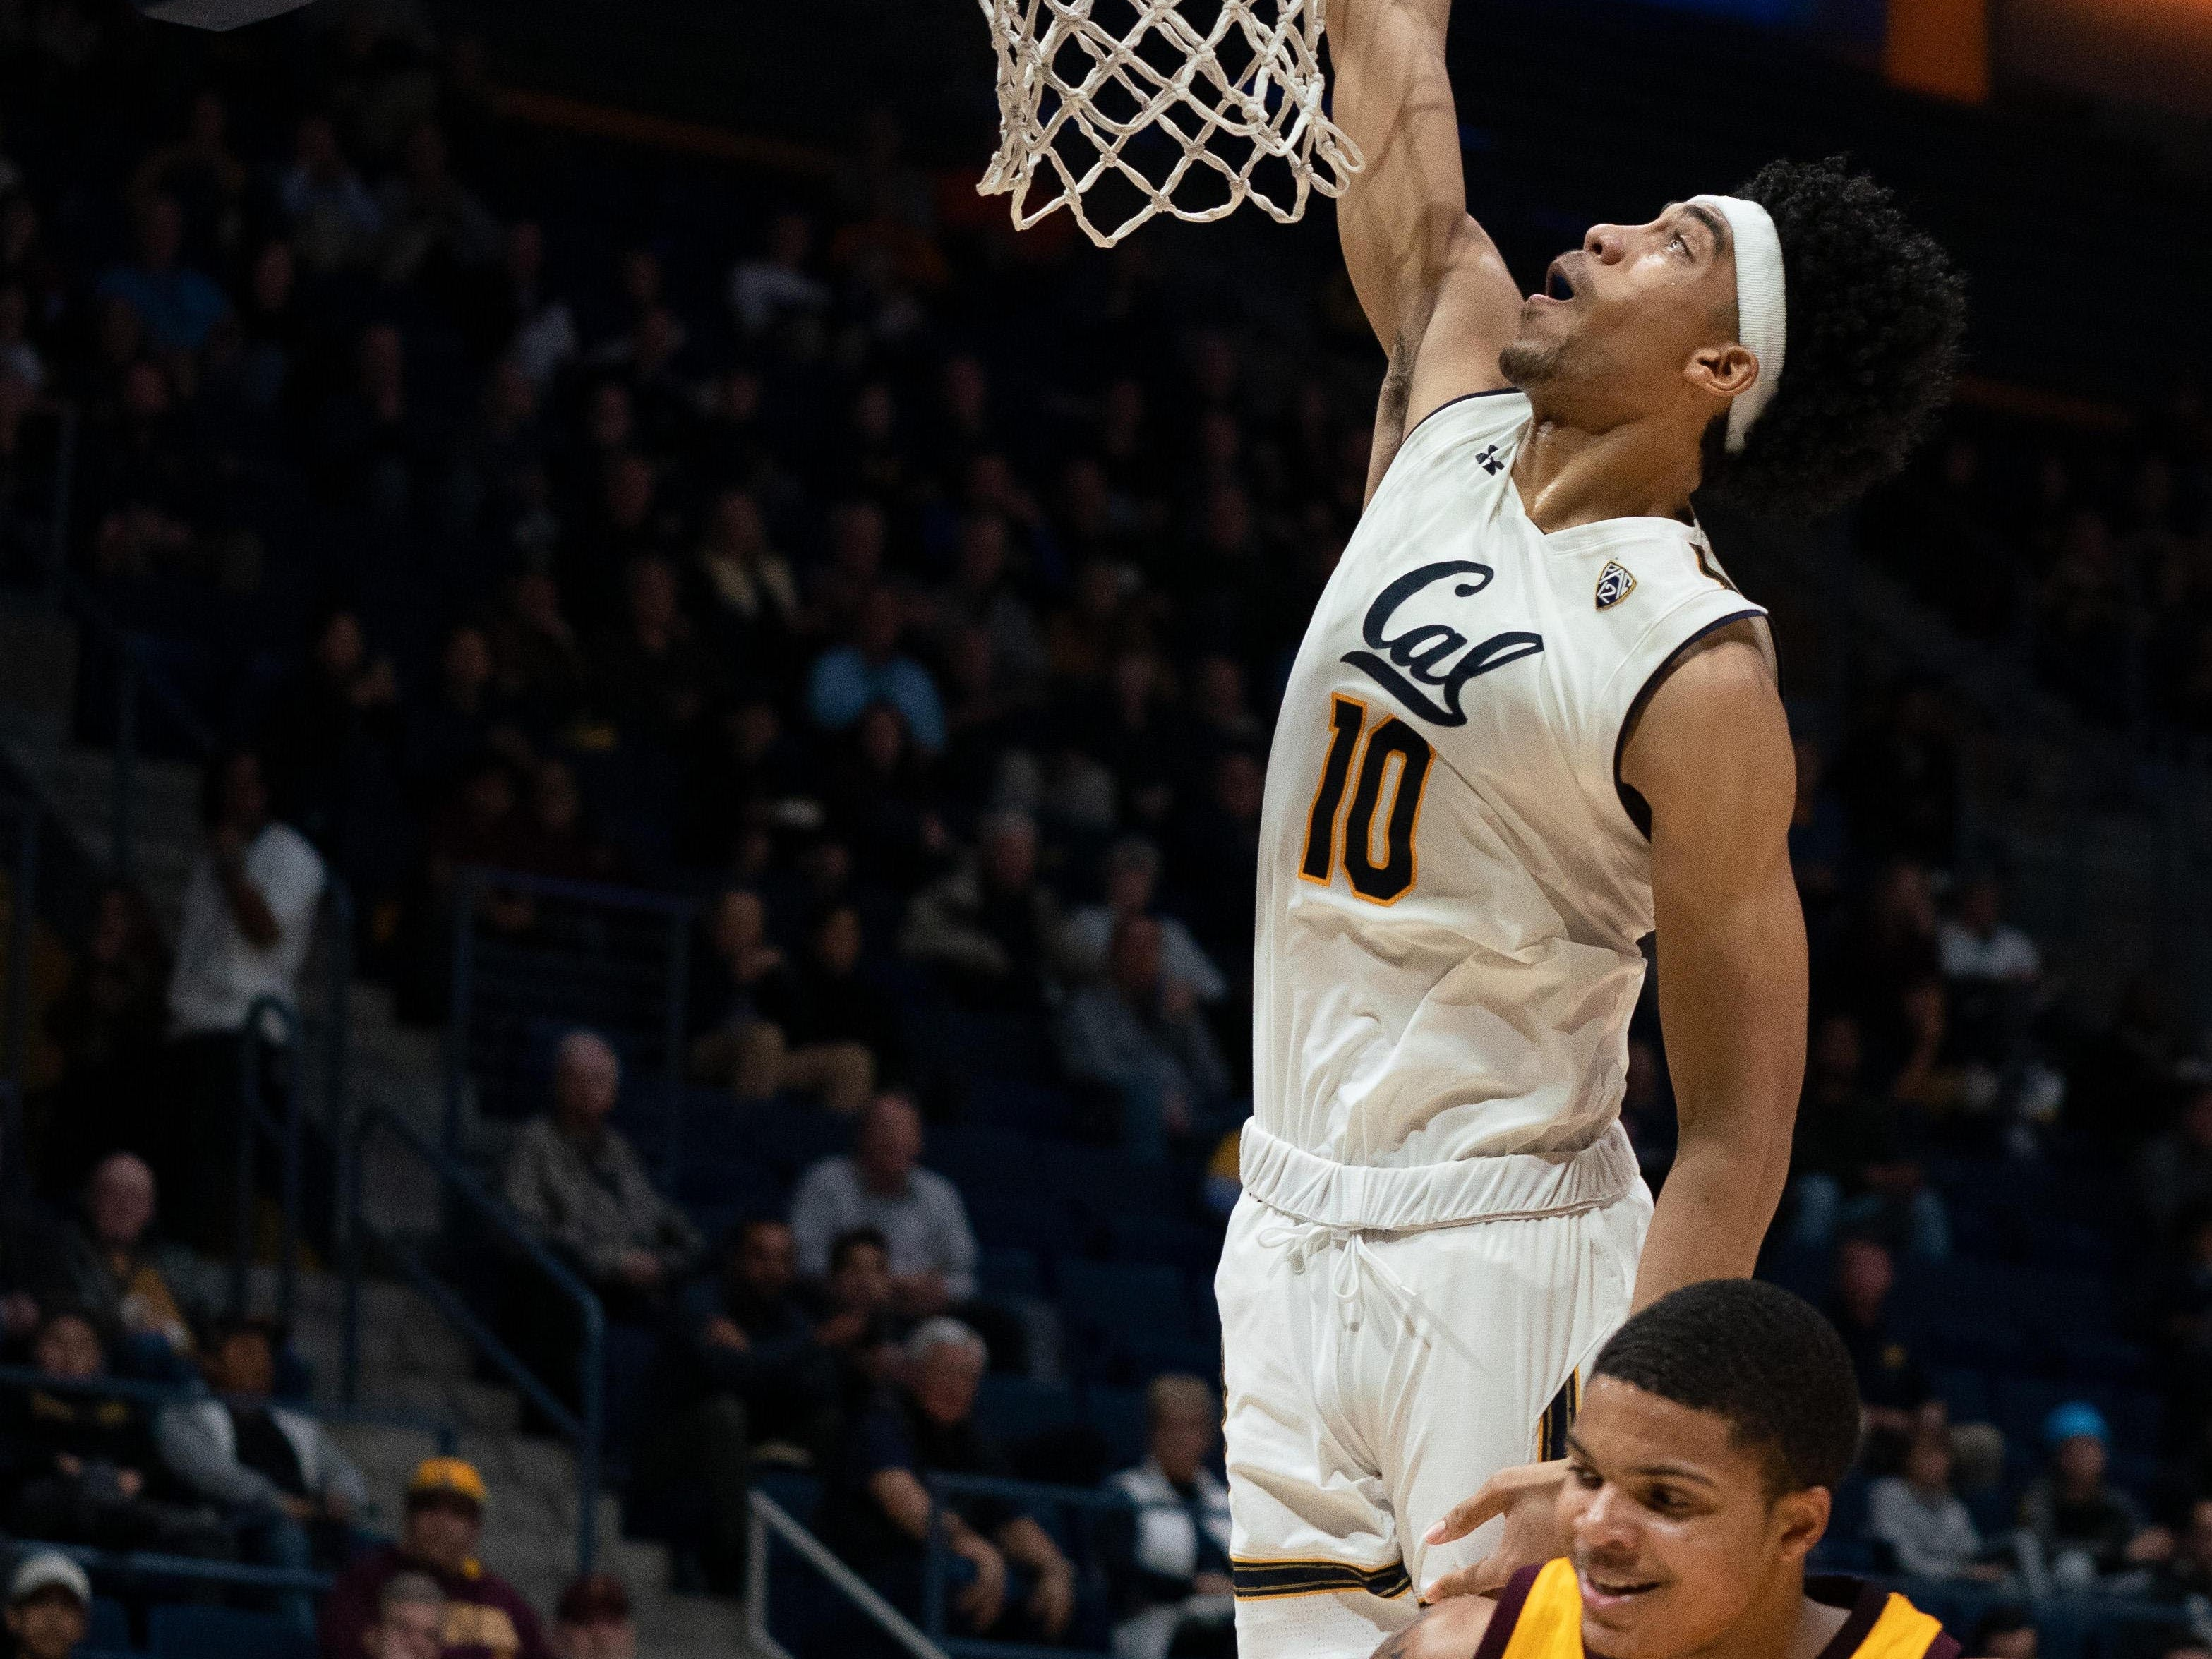 Jan 9, 2019; Berkeley, CA, USA; California Golden Bears forward Justice Sueing (10) dunks the basketball against Arizona State Sun Devils guard Rob Edwards (2) during the first half at Haas Pavilion. Mandatory Credit: Neville E. Guard-USA TODAY Sports